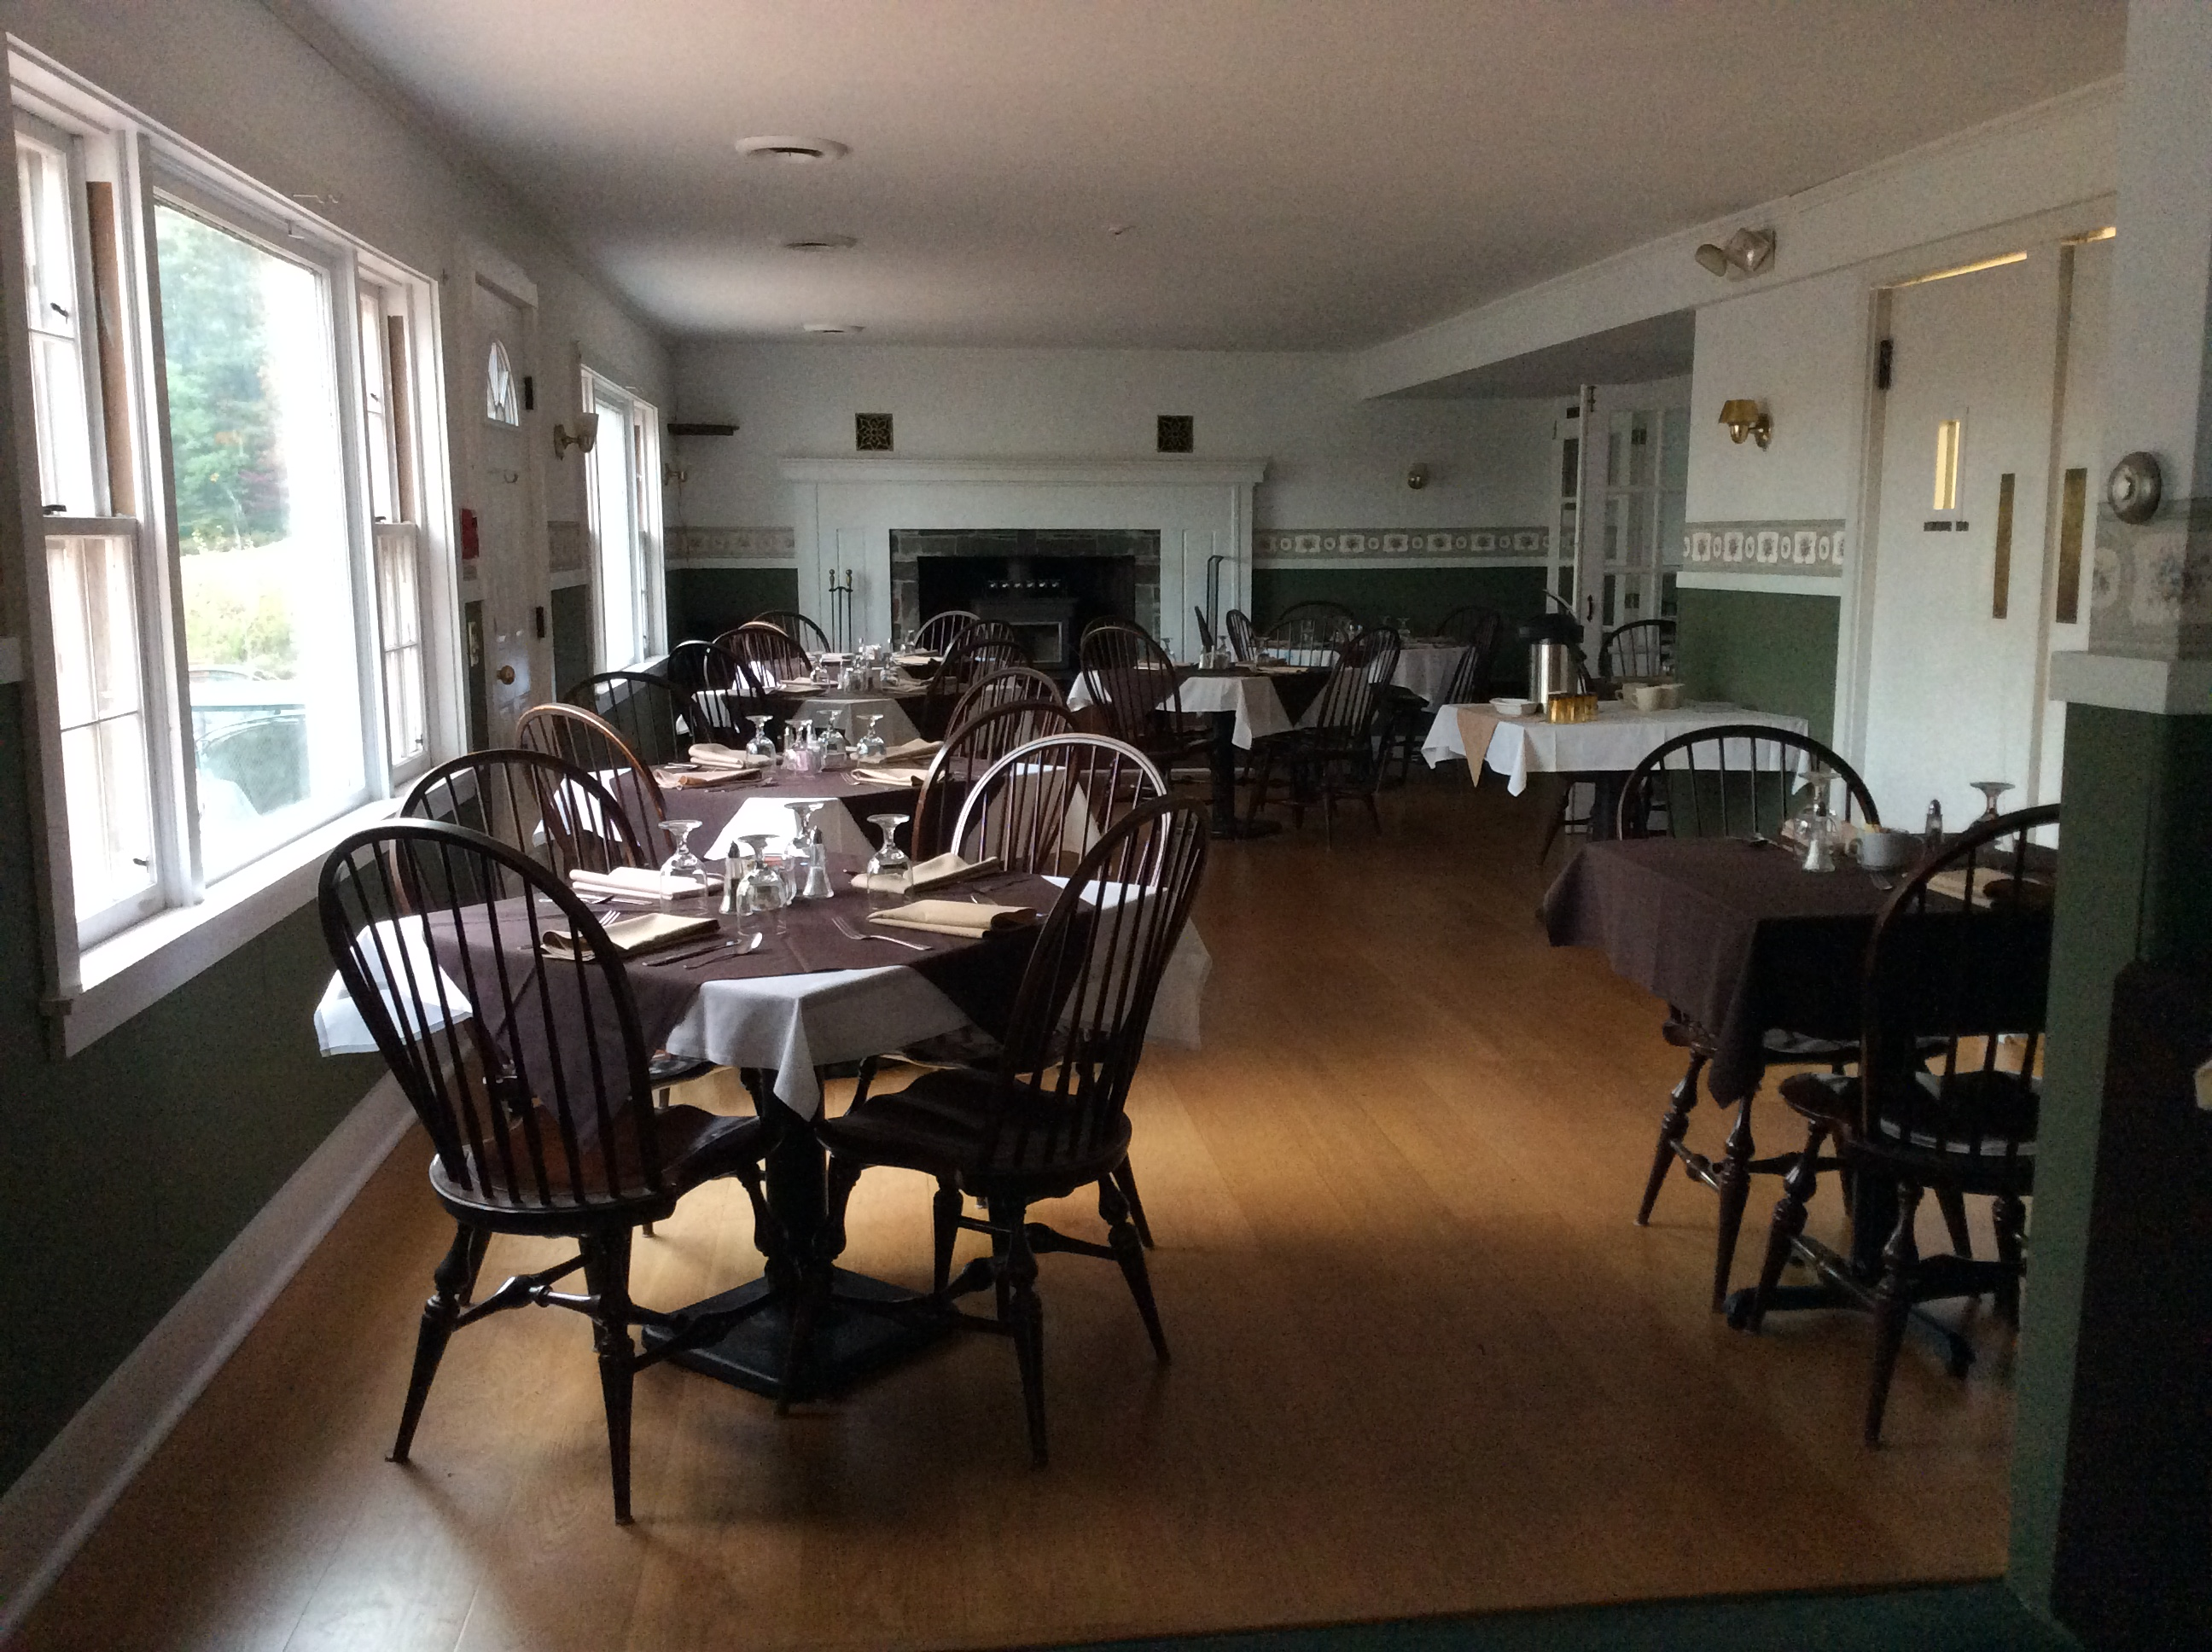 Colonel Williams' dining room